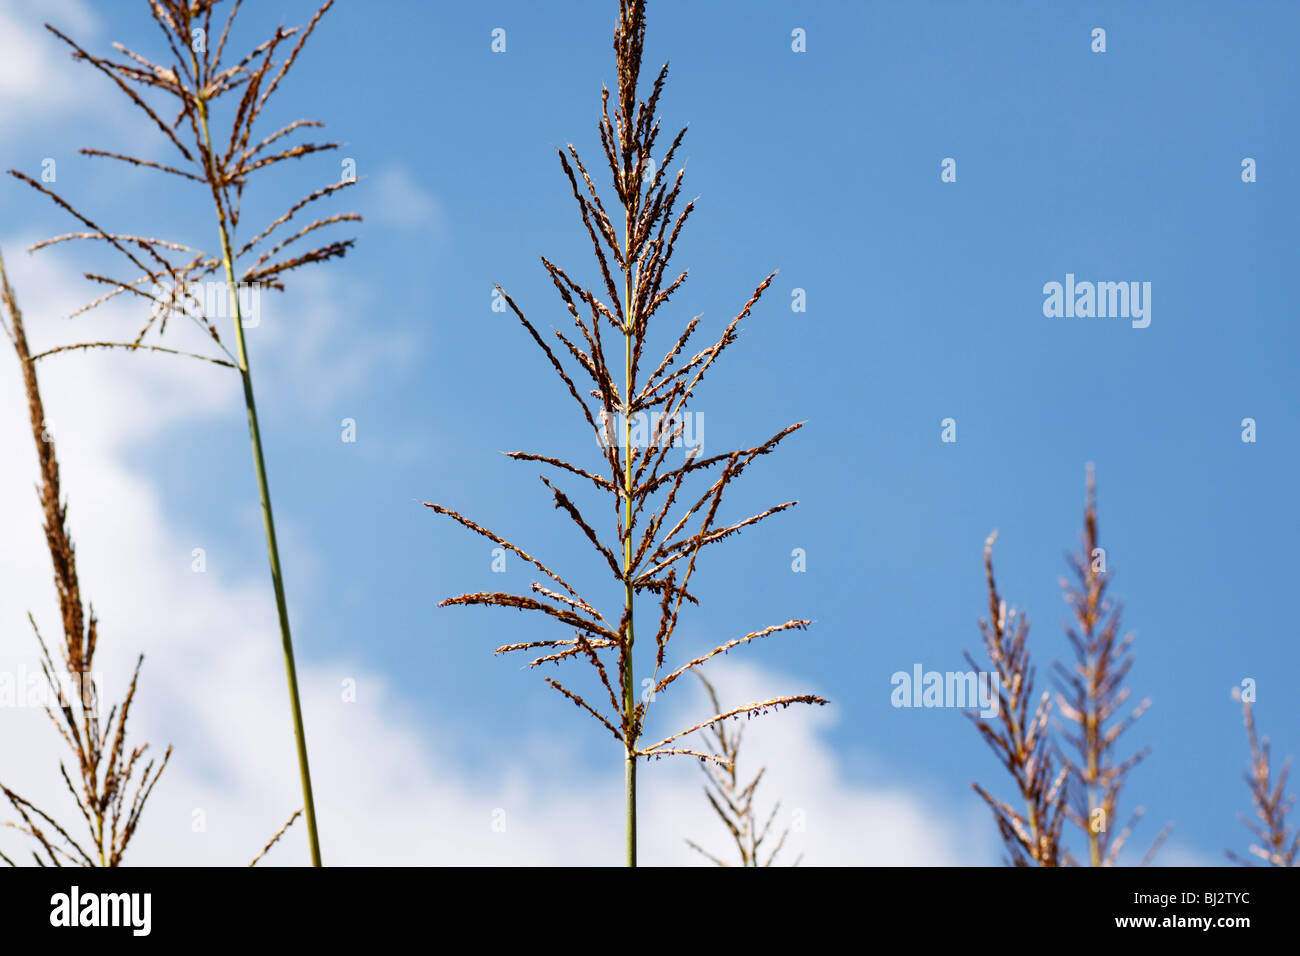 Stalks of tall grass carrying seed. Family: Poaceae. Midlands, Kwazulu Natal, South Africa. - Stock Image